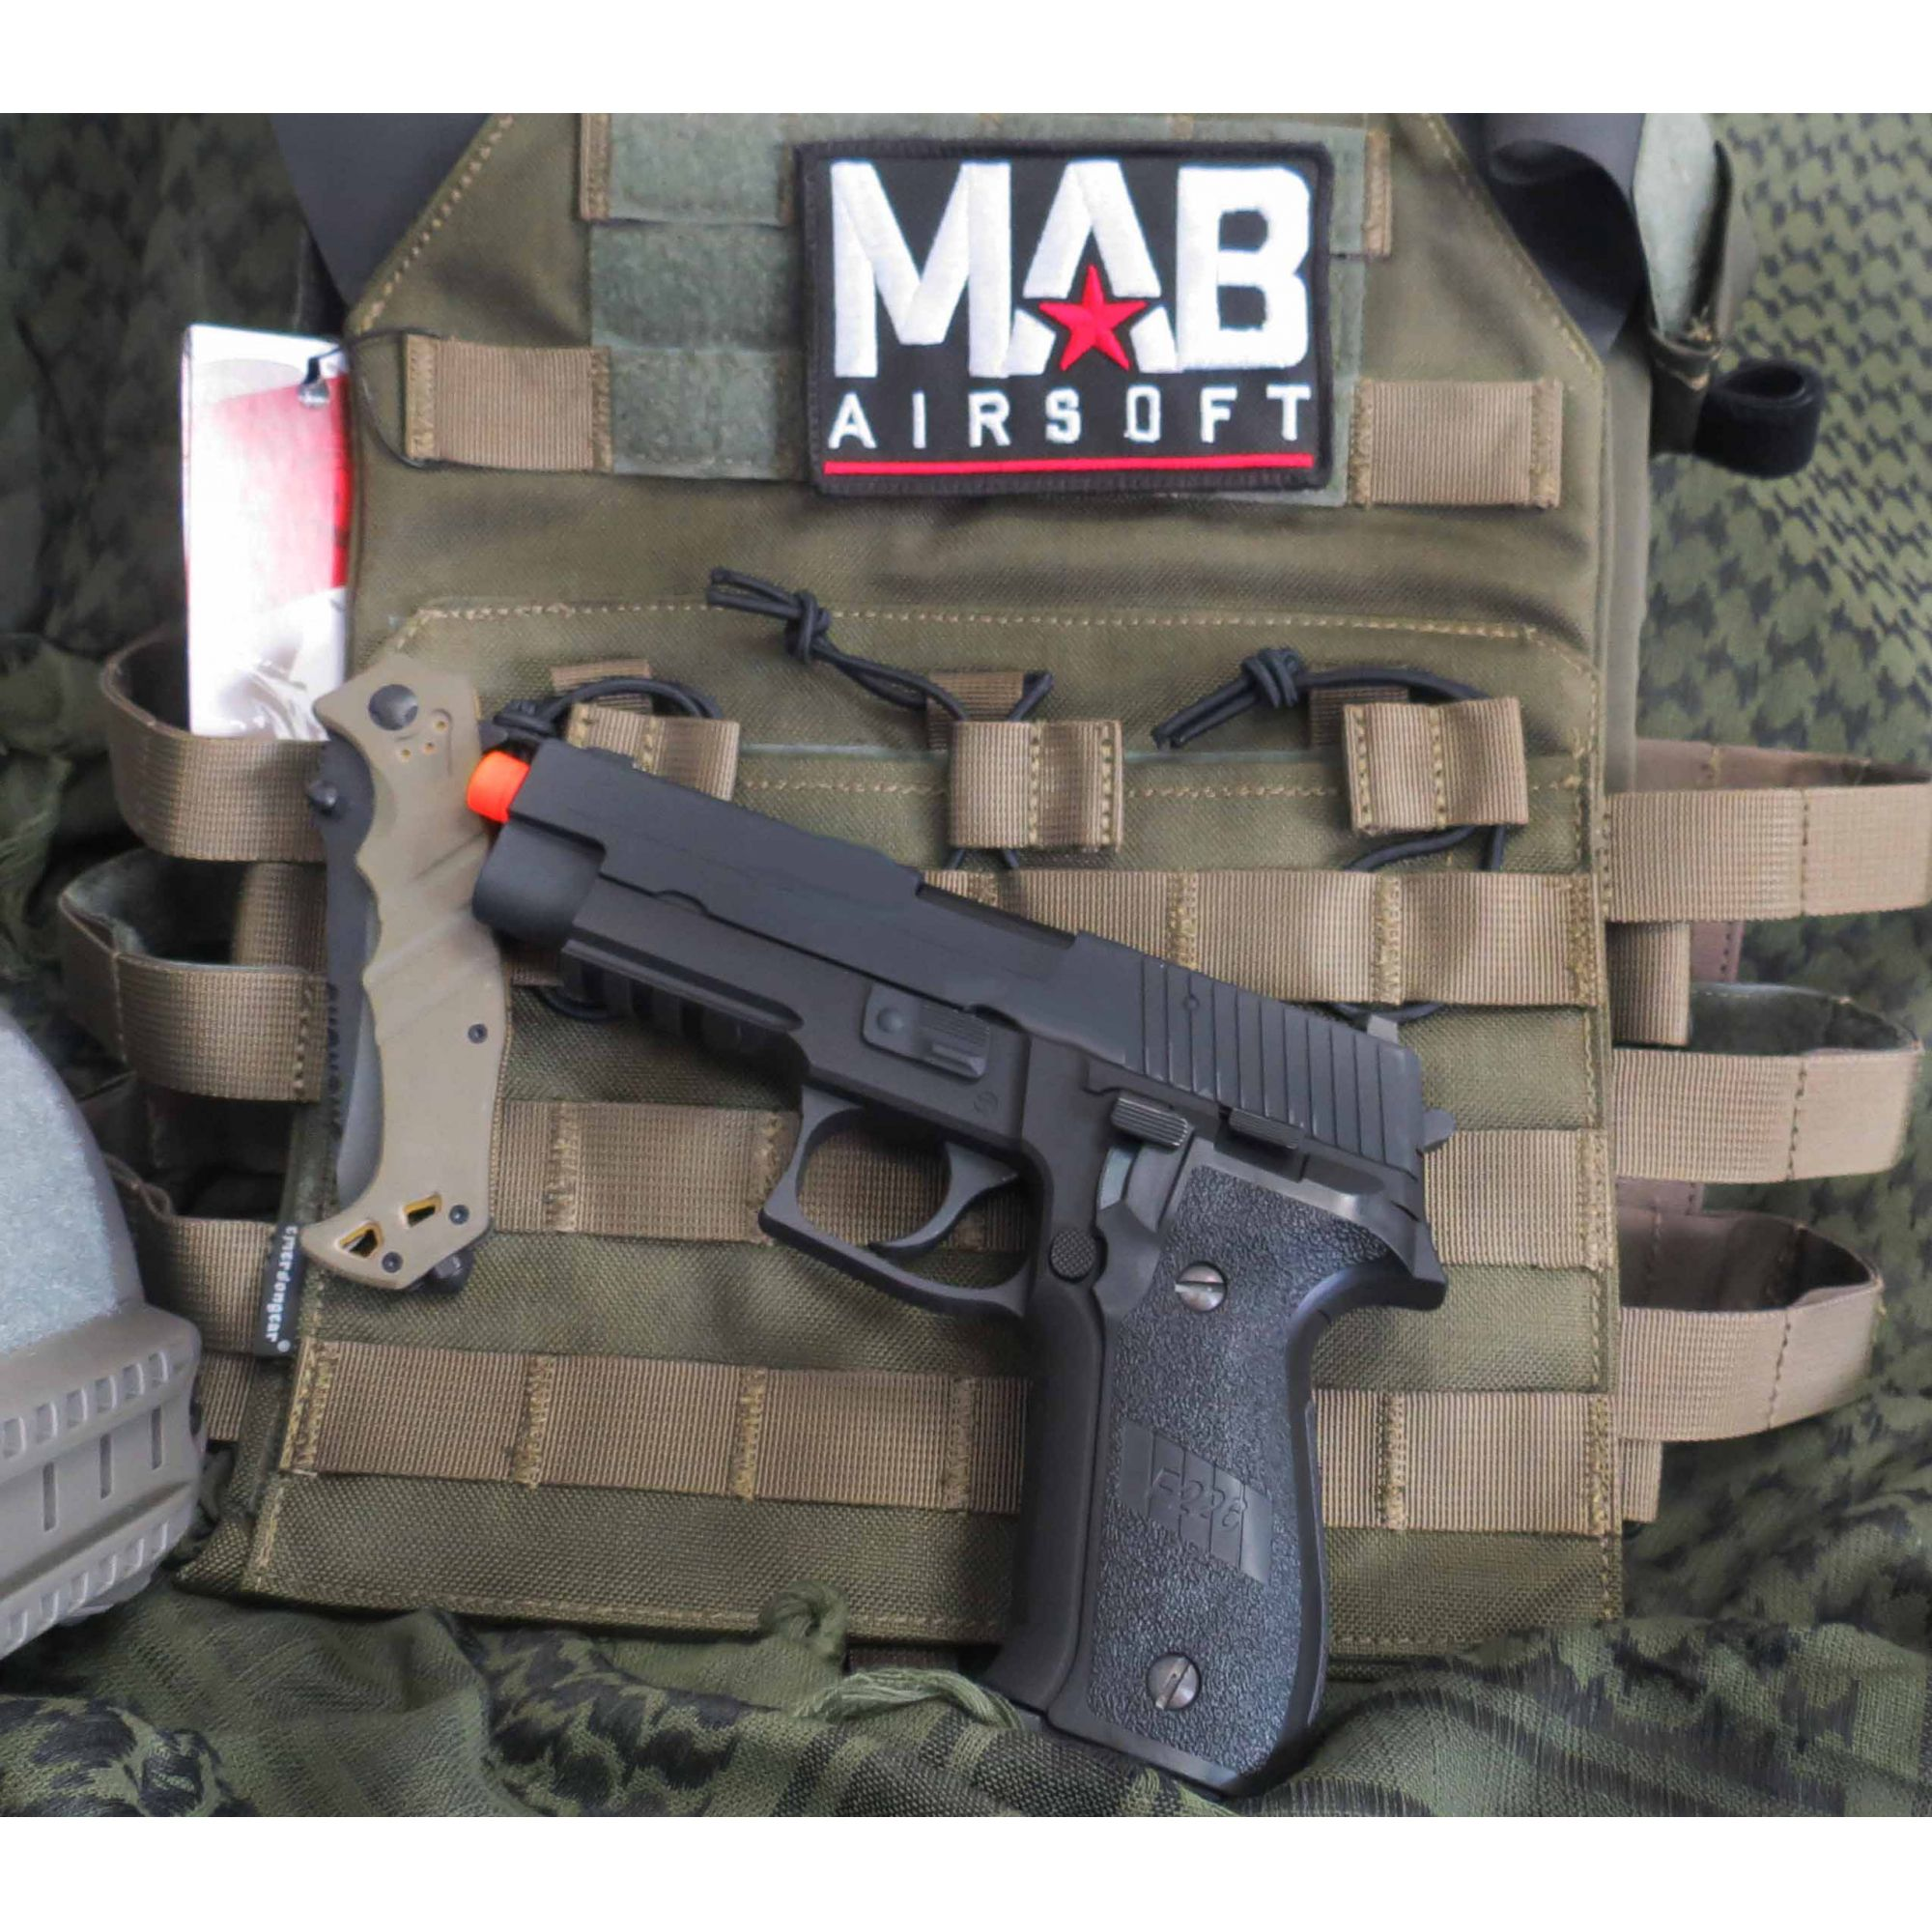 Pistola Airsoft WE Sig Sauer P226 Tactical GBB Full Metal Preta - Calibre 6 mm  - MAB AIRSOFT